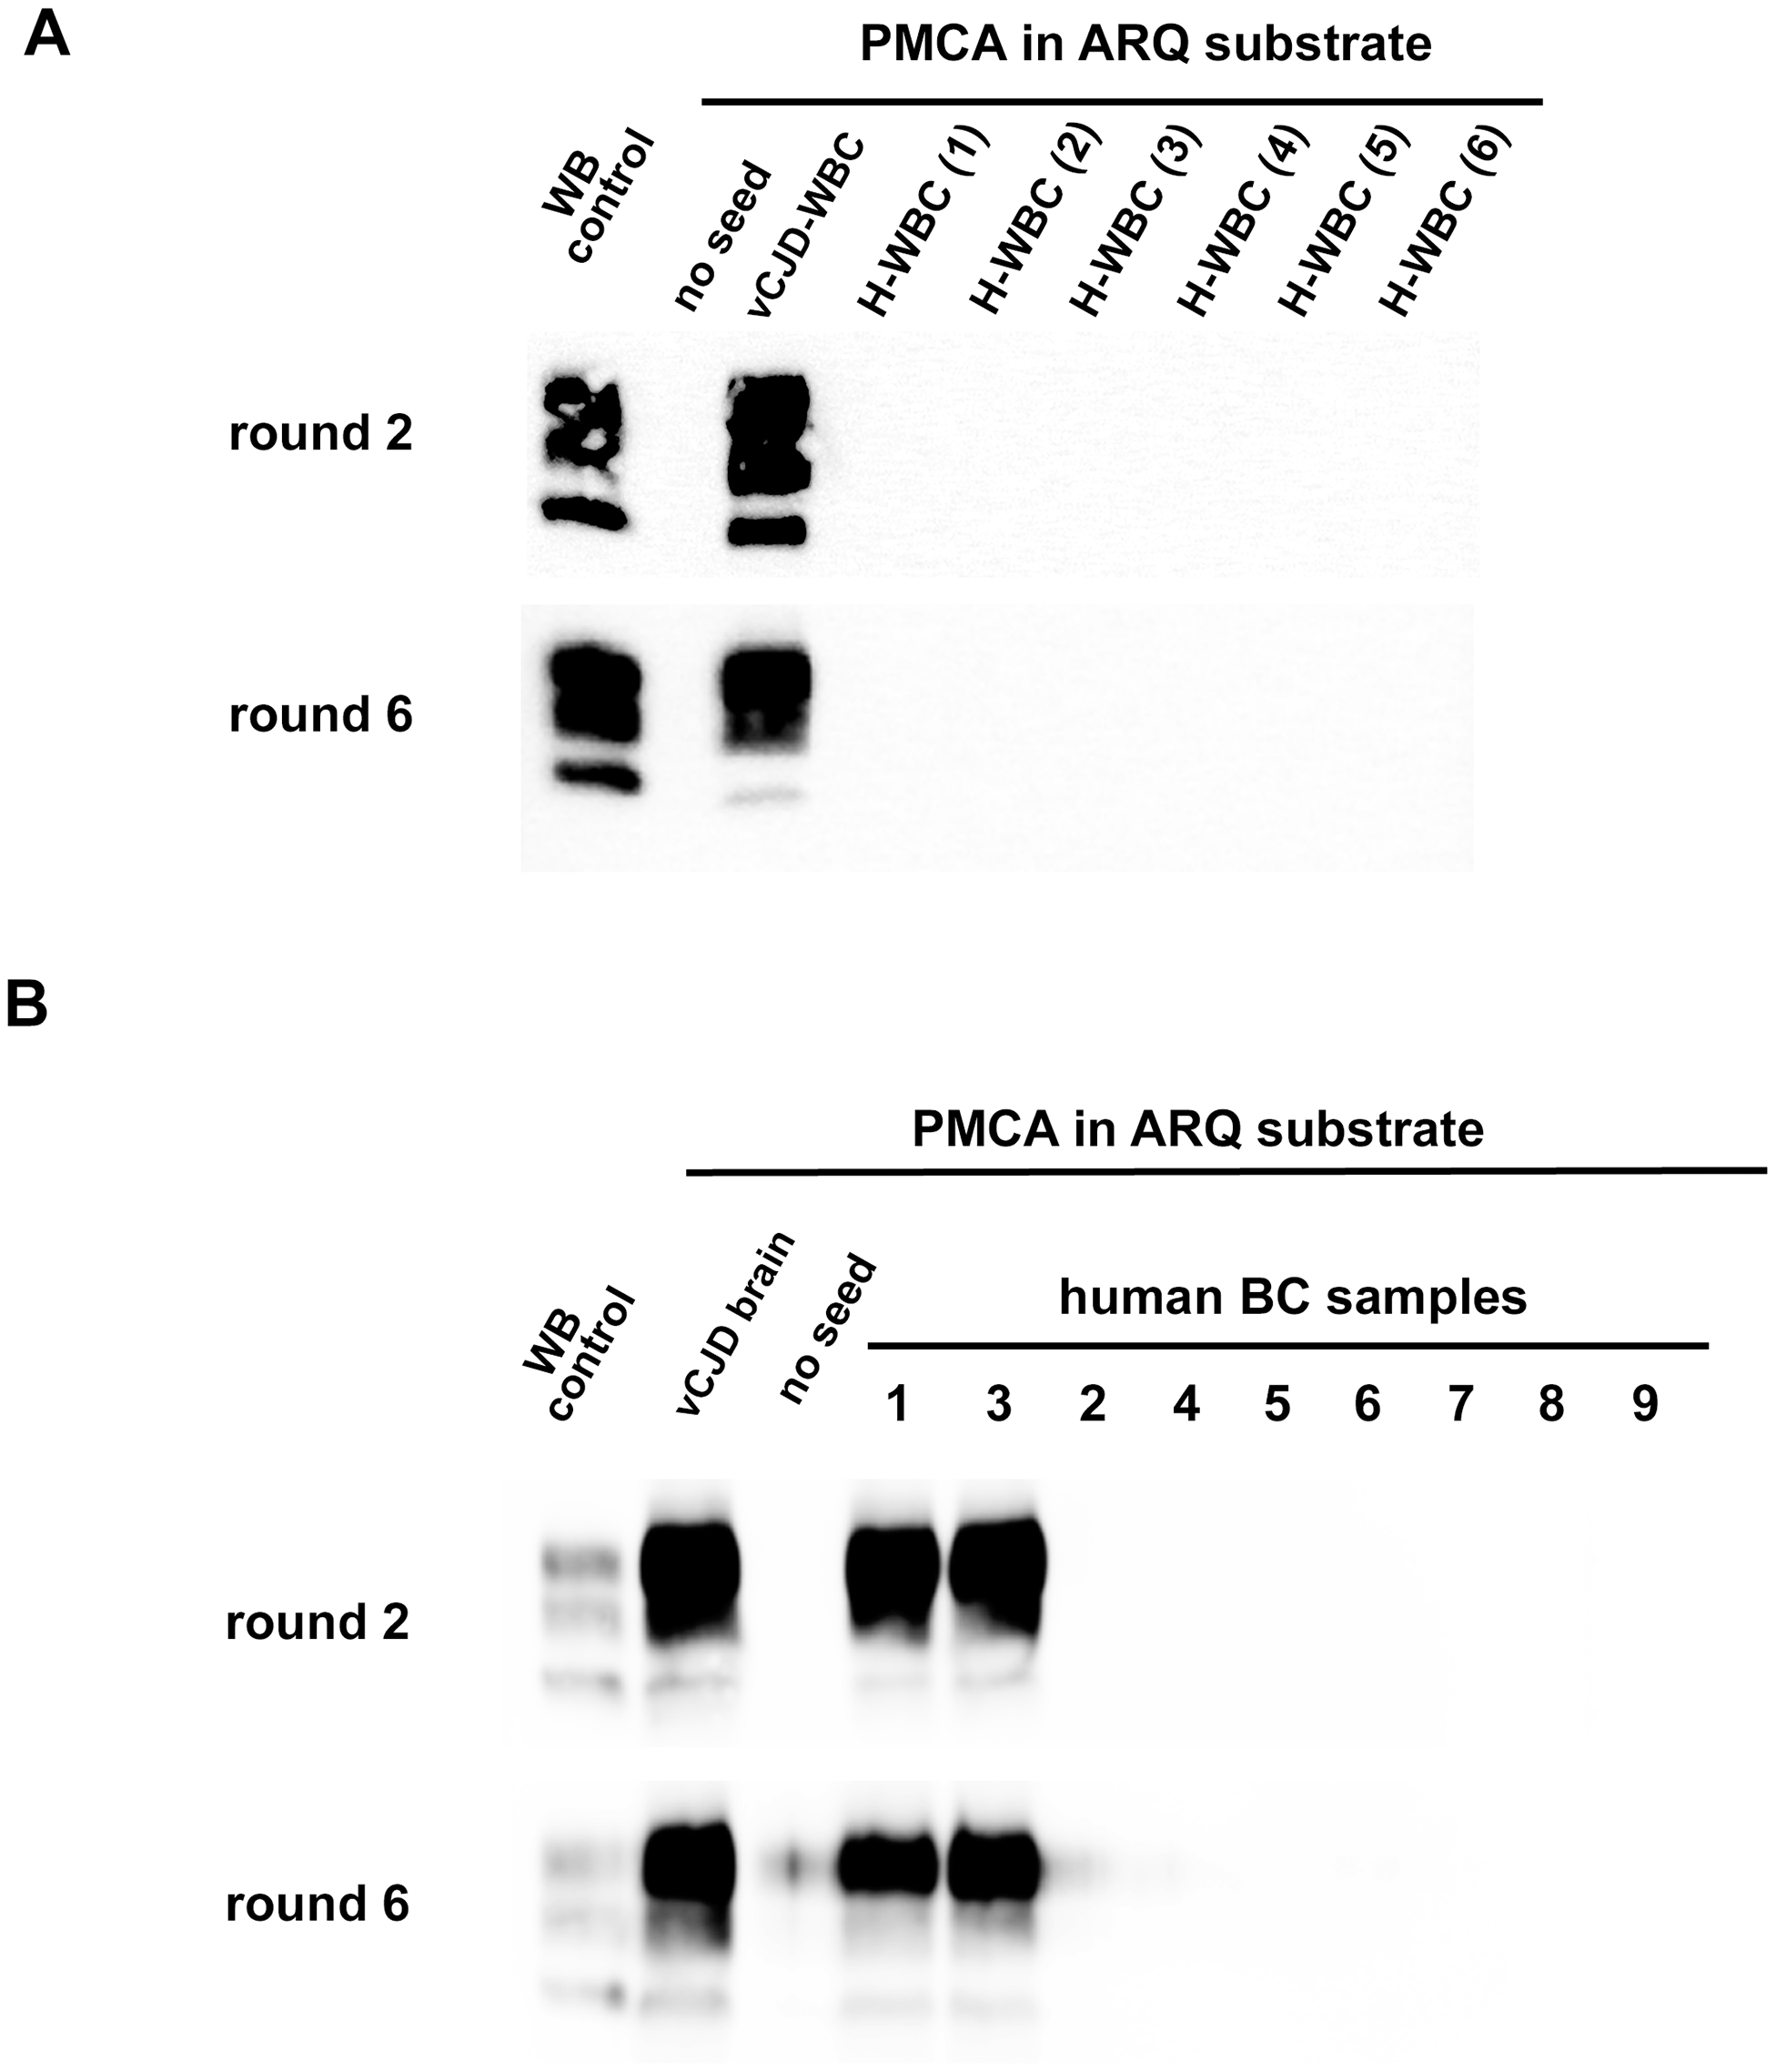 PrP<sup>res</sup> in PMCA reactions seeded with WBC or BC from a vCJD affected patients and healthy controls.